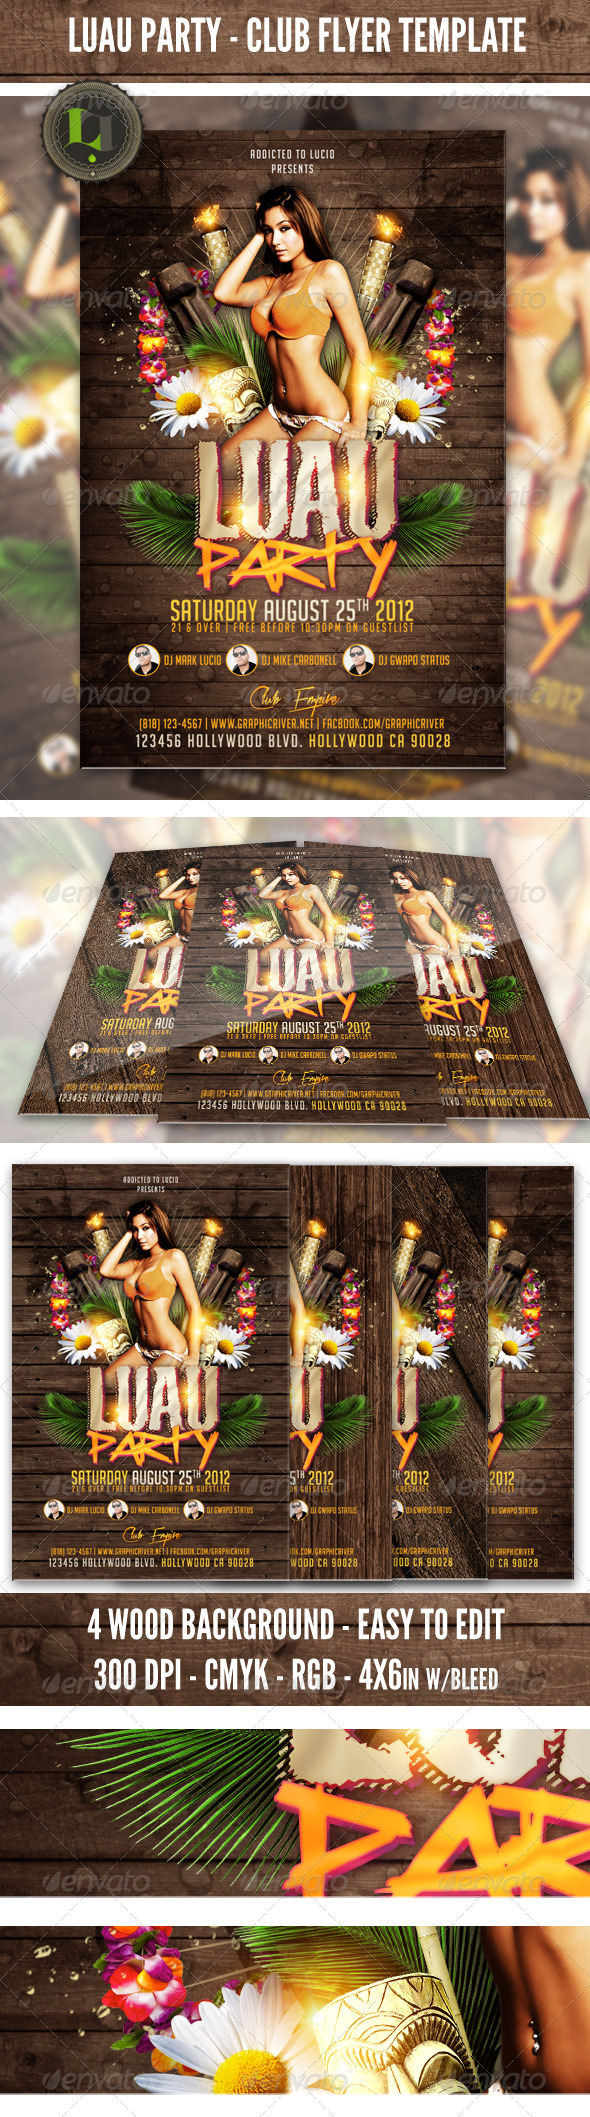 GraphicRiver Luau Party Club Flyer Template 2621586